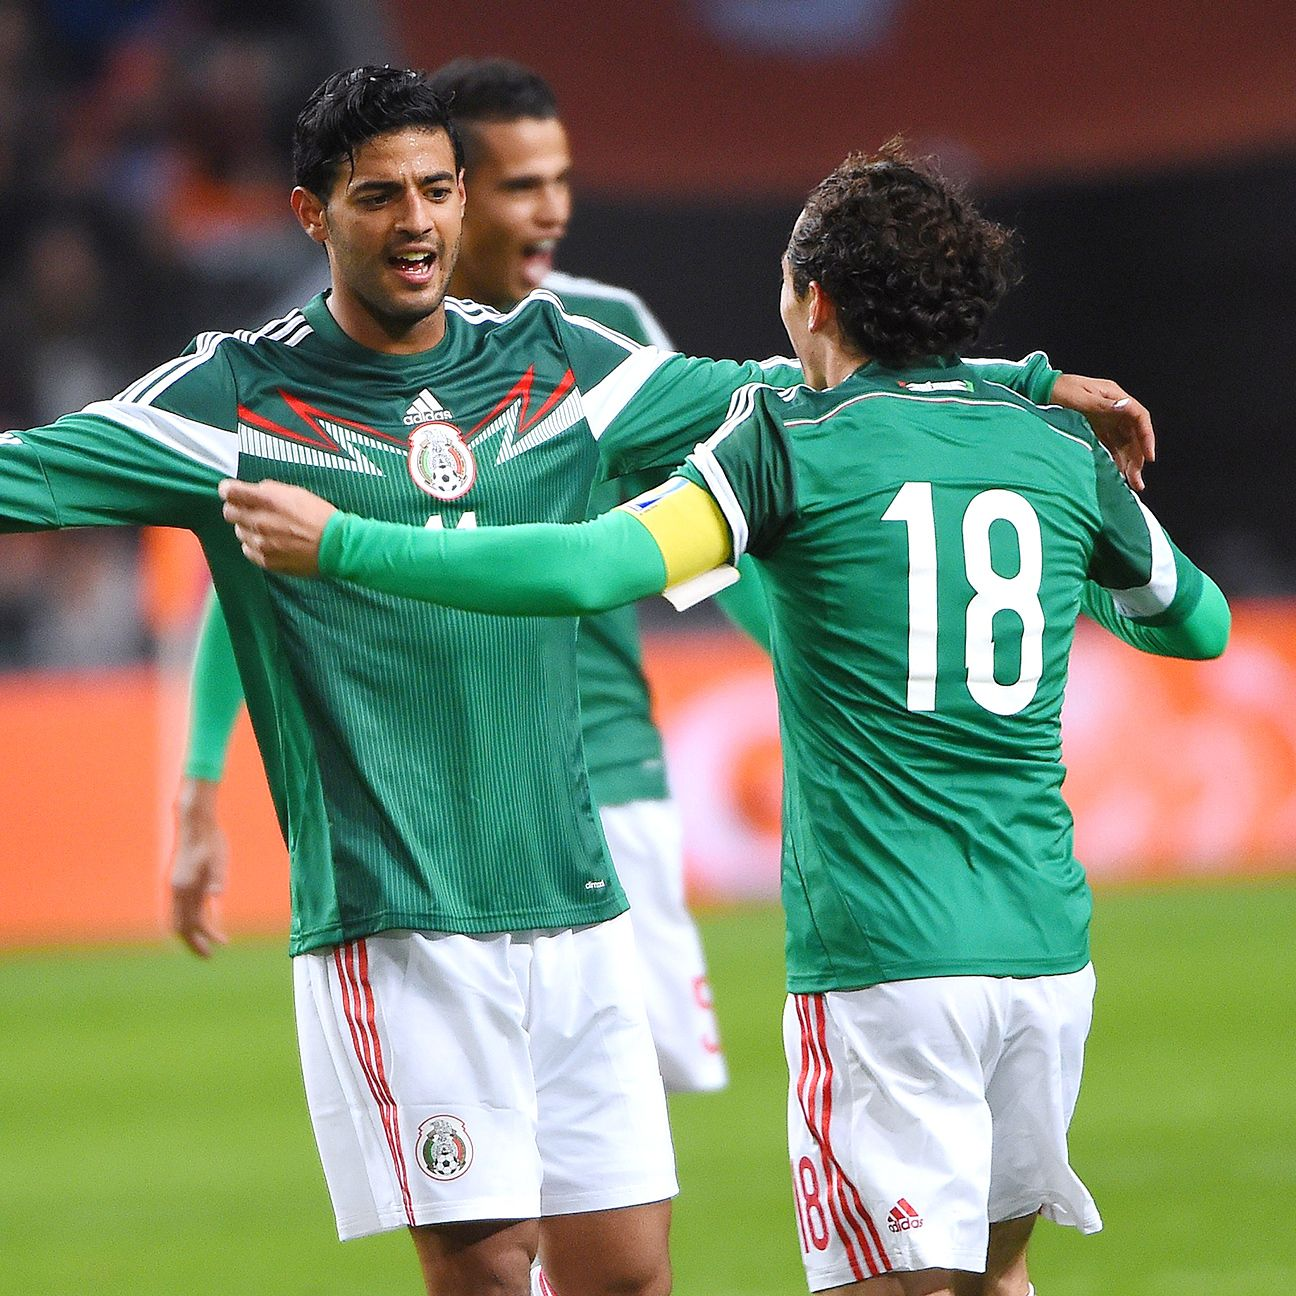 Carlos Vela put on a show in his Mexico return with two goals versus the Netherlands.